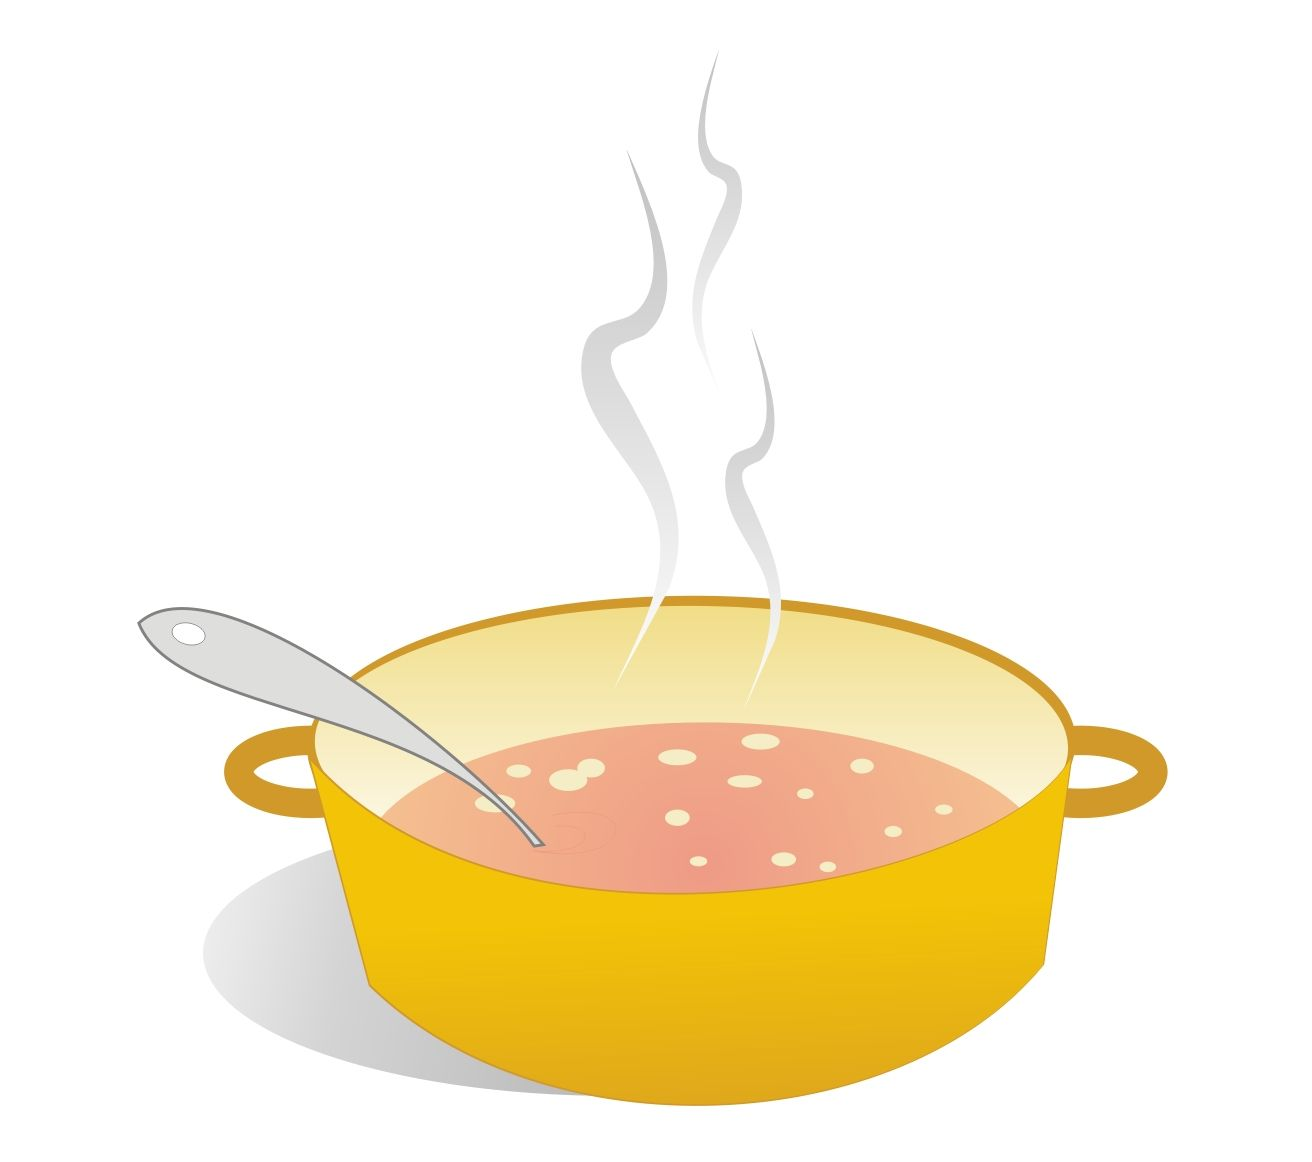 hight resolution of warm soup cliparts 2936837 license personal use